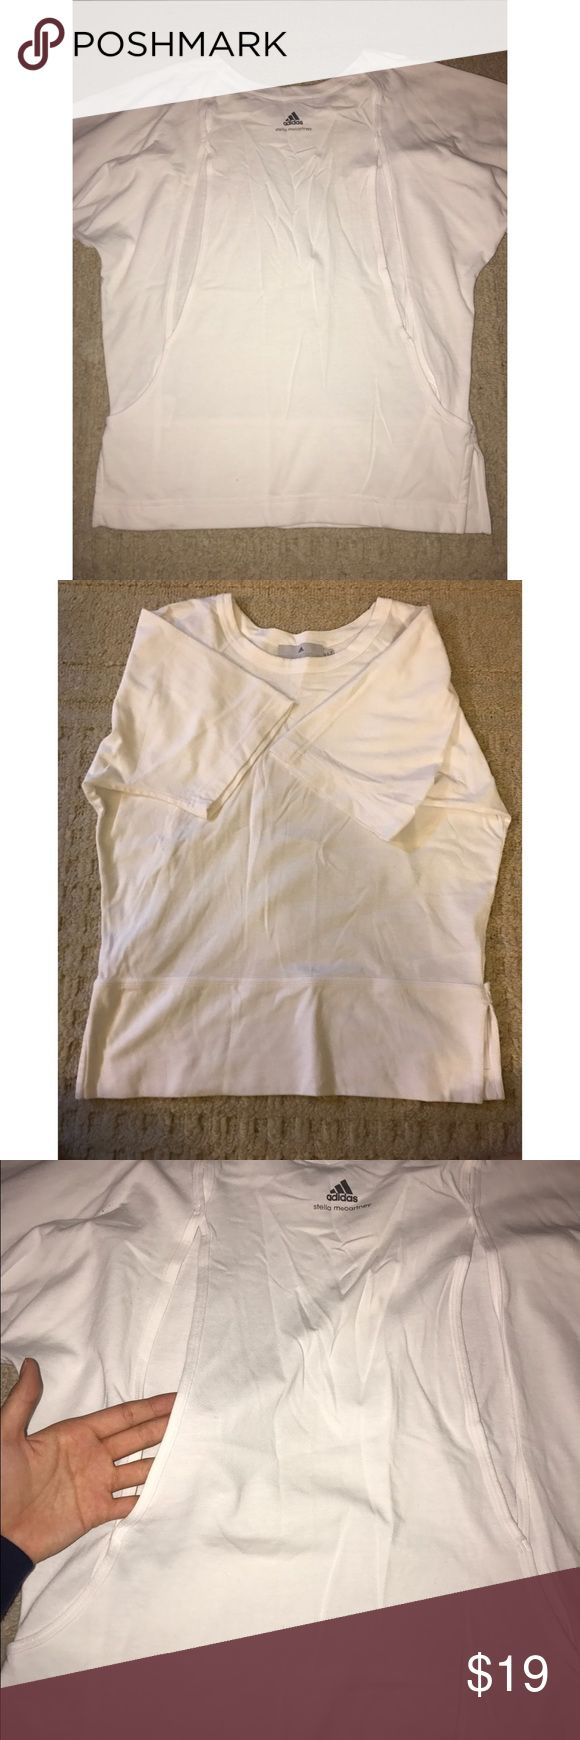 Adidas Stella Maccartney Shirt Unique top with open back! Adidas by Stella McCartney Tops Tees - Short Sleeve